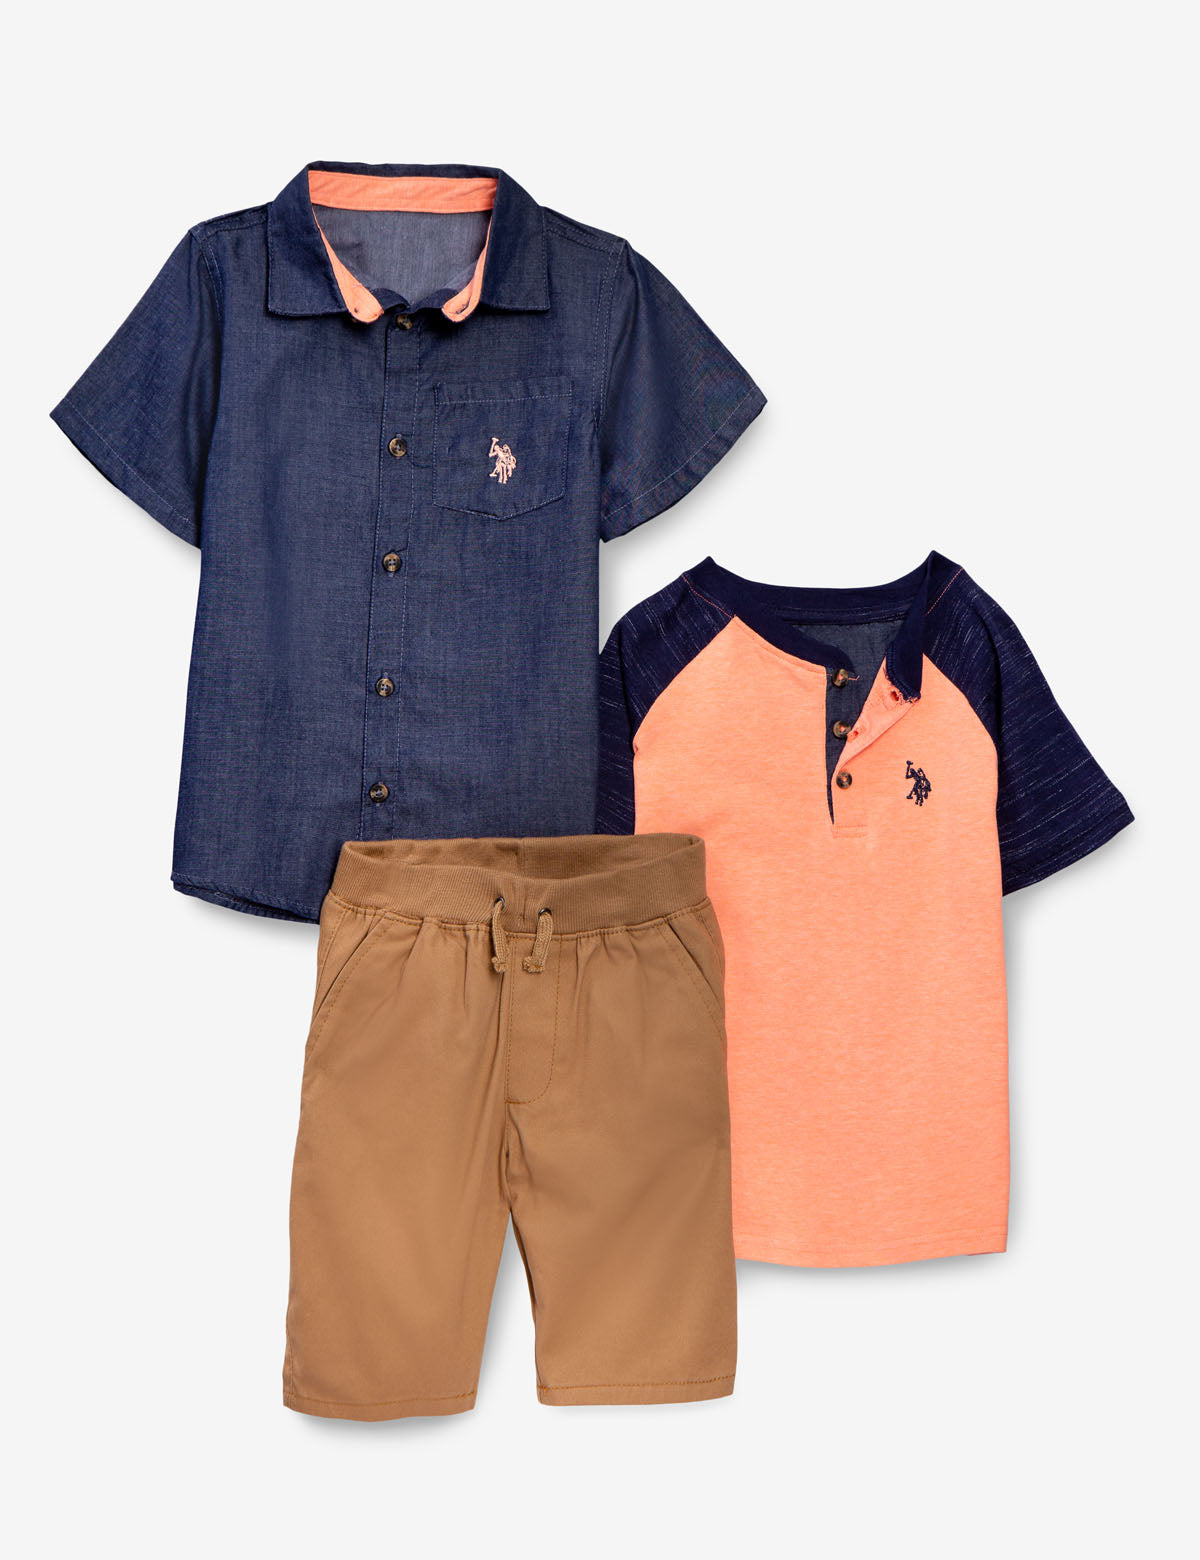 BOYS 3 PIECE SET - SHIRT, TEE & SHORTS - U.S. Polo Assn.